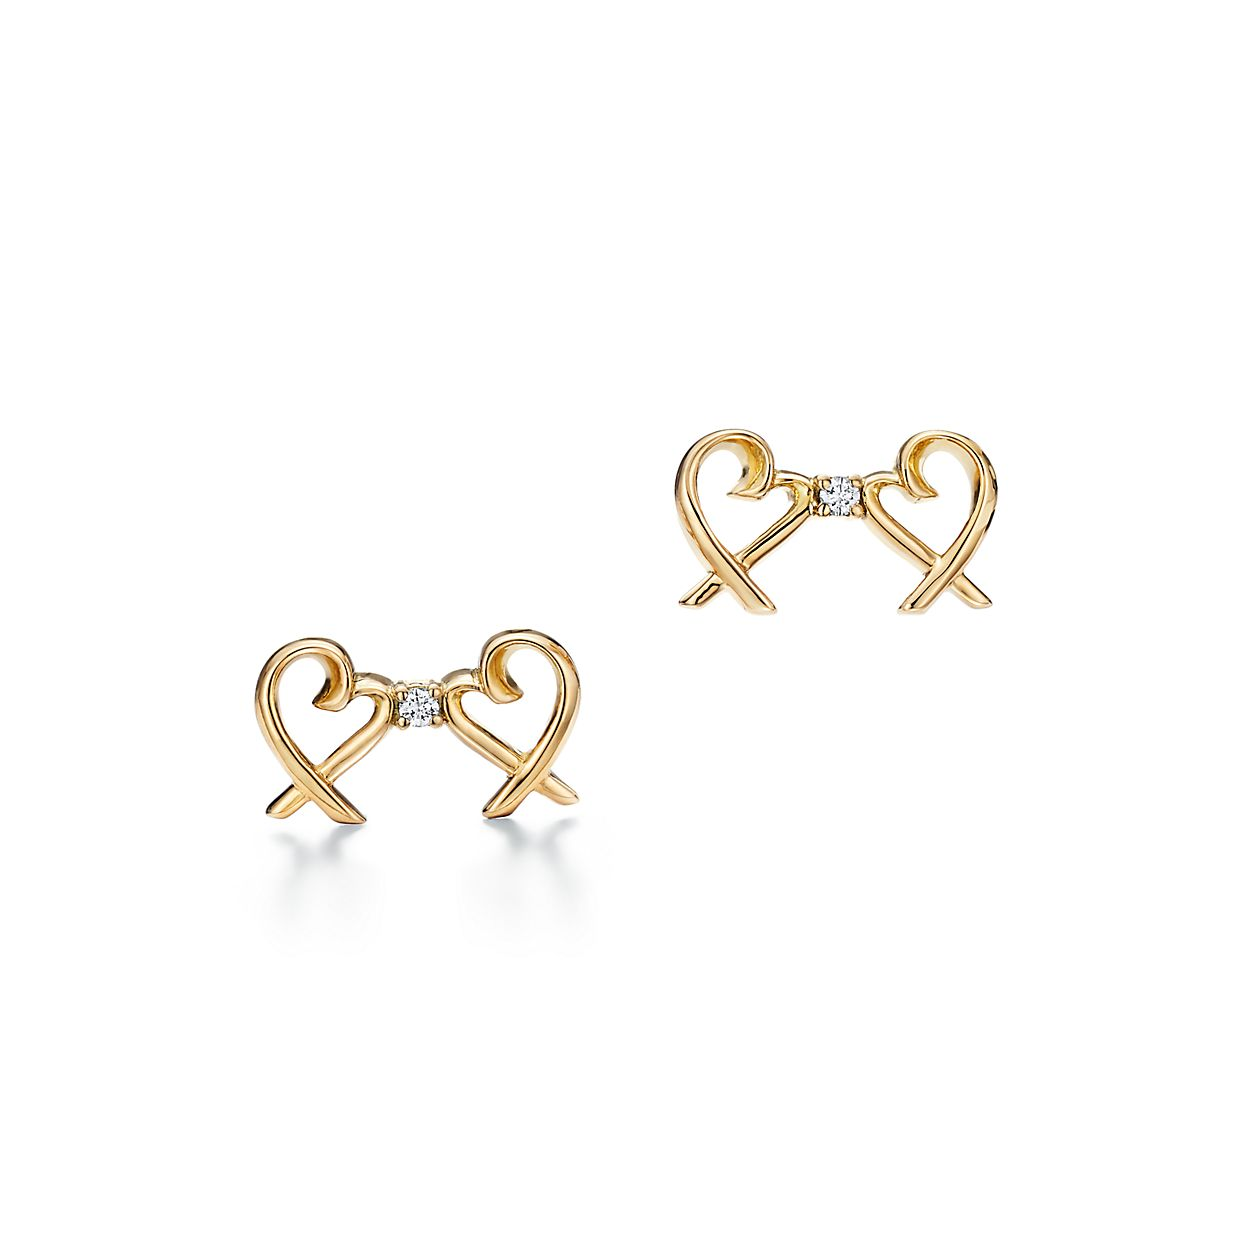 Paloma Pico Double Loving Heart Earrings